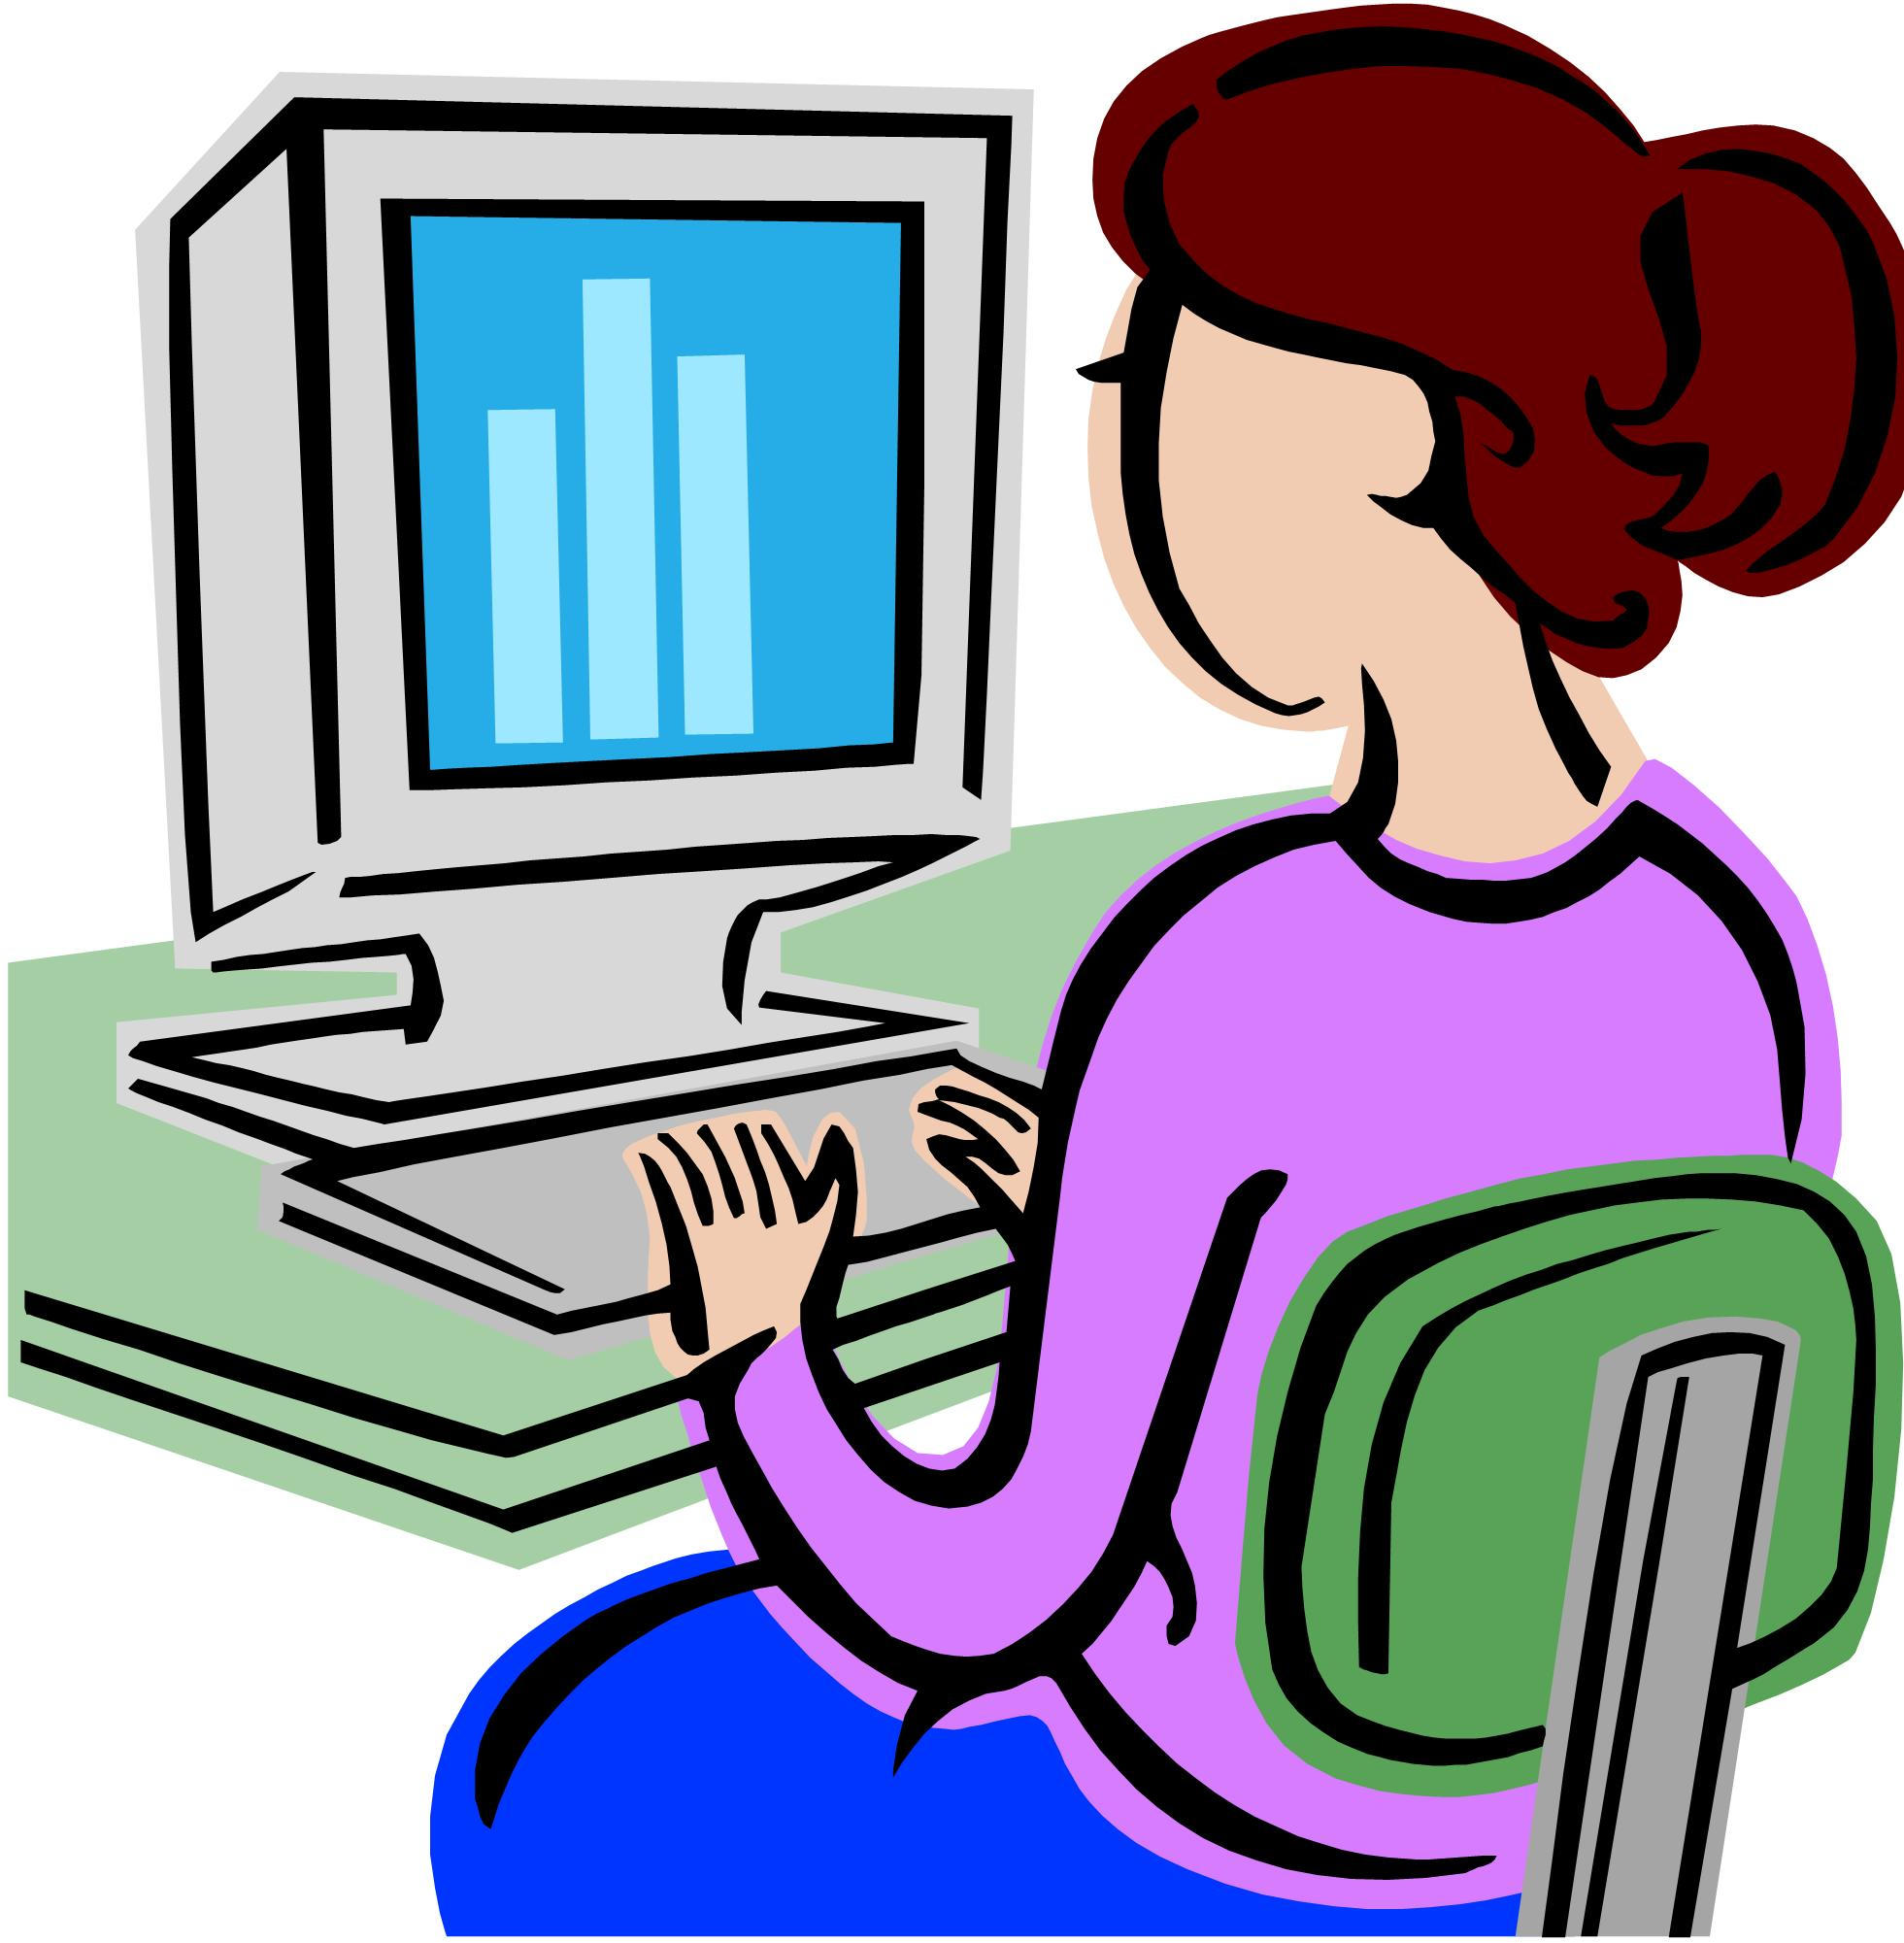 Lady on clipart . Computer clip art